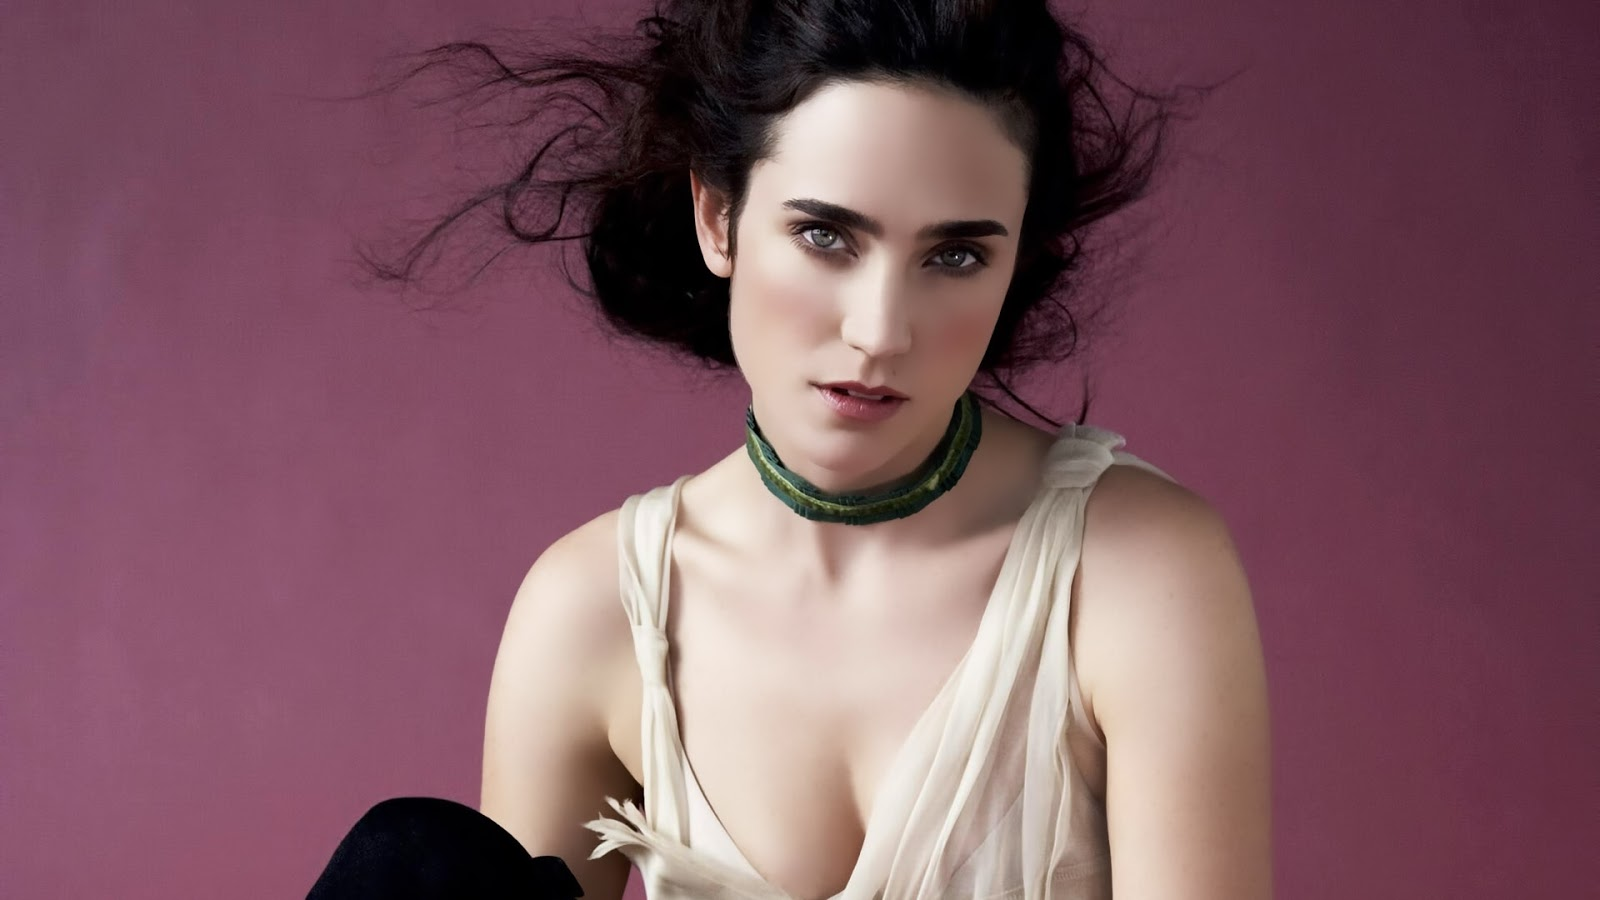 Jennifer Connelly Hd Wallpapers Actress Hd Wallpapers